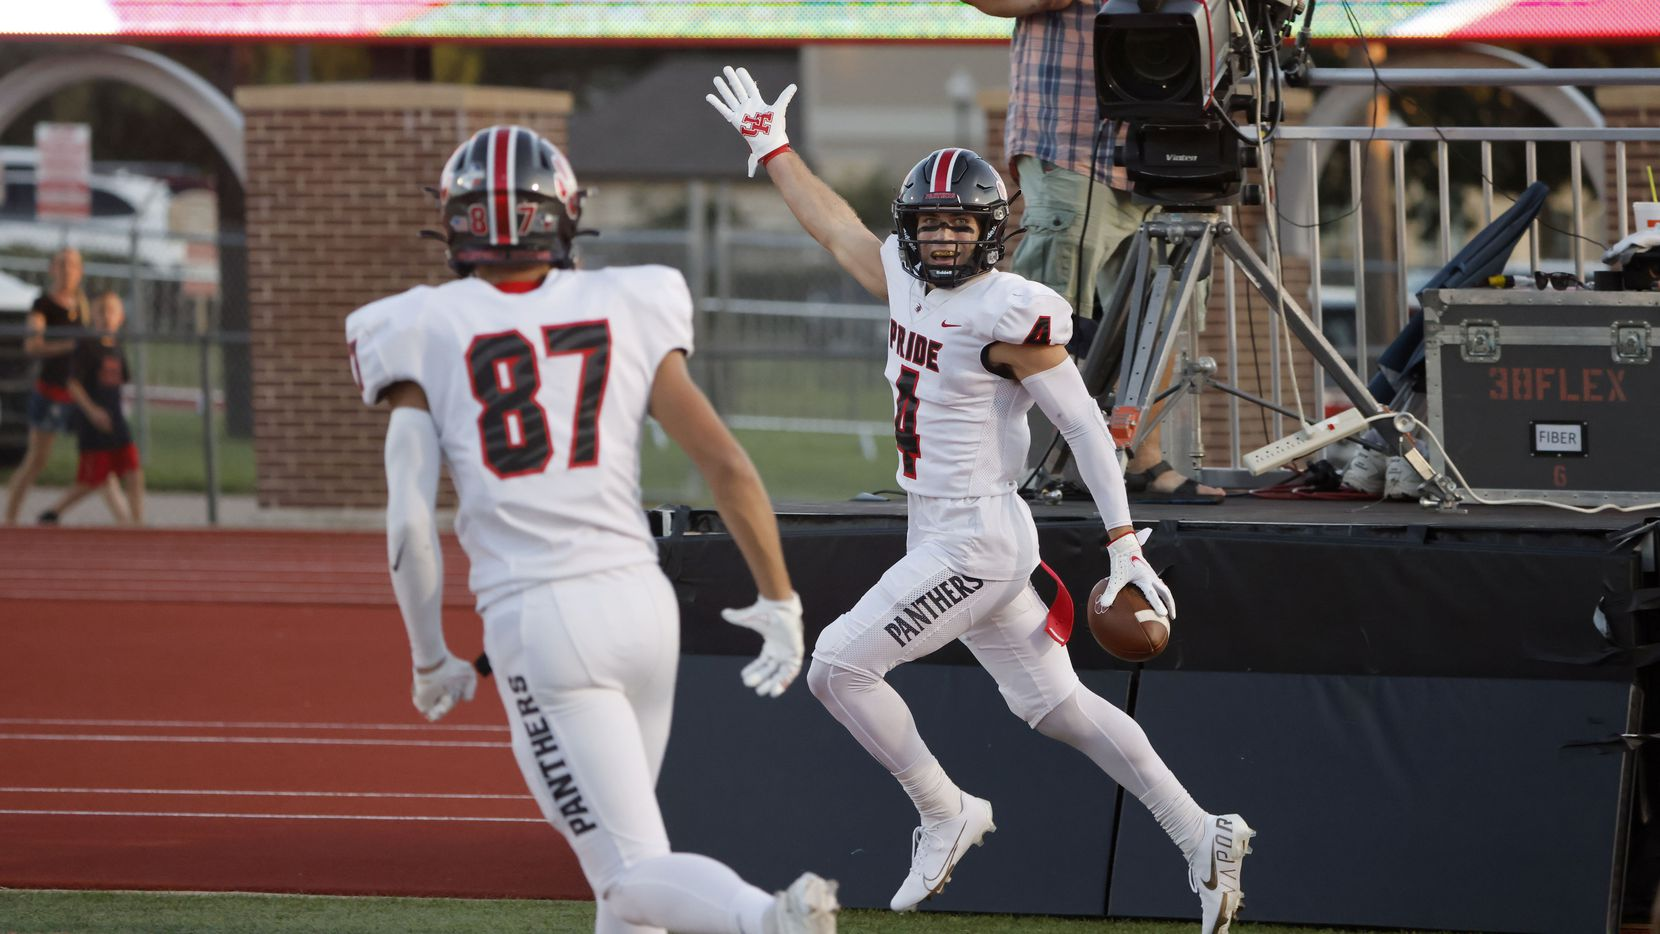 Colleyville Heritage receiver Hogan Wasson (4) celebrates his first quarter touchdown against Grapevine with Braden Blueitt (87)during their high school football game in Grapevine, Texas on Aug. 27, 2021.